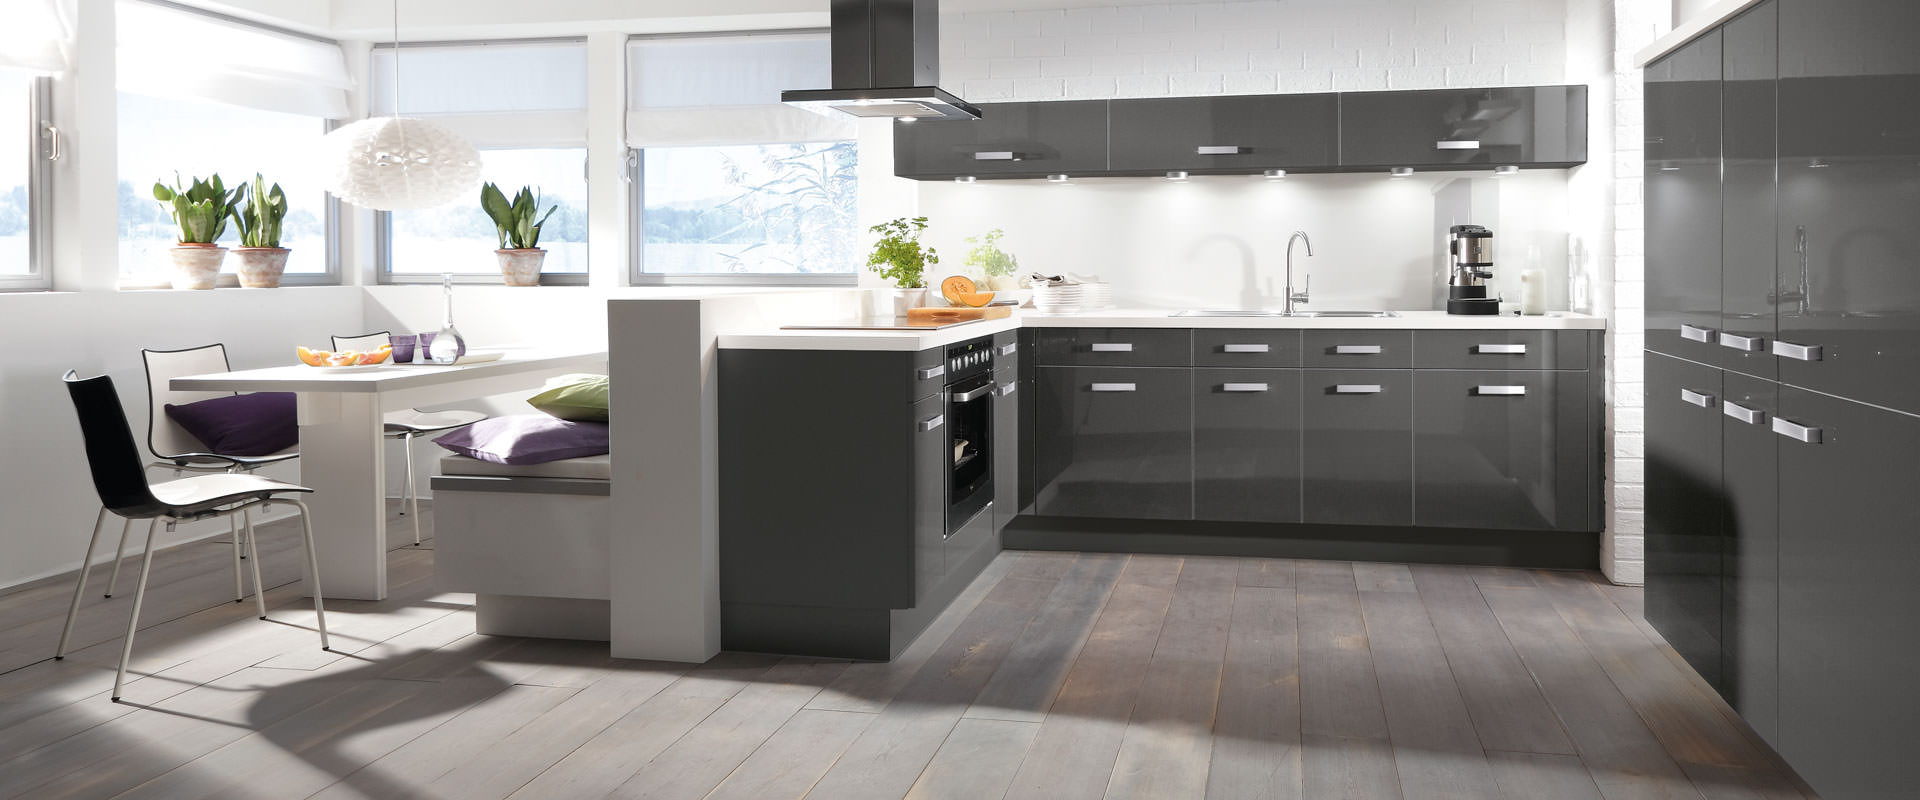 Impuls Küchen doors group 11 – Stolz Kitchens